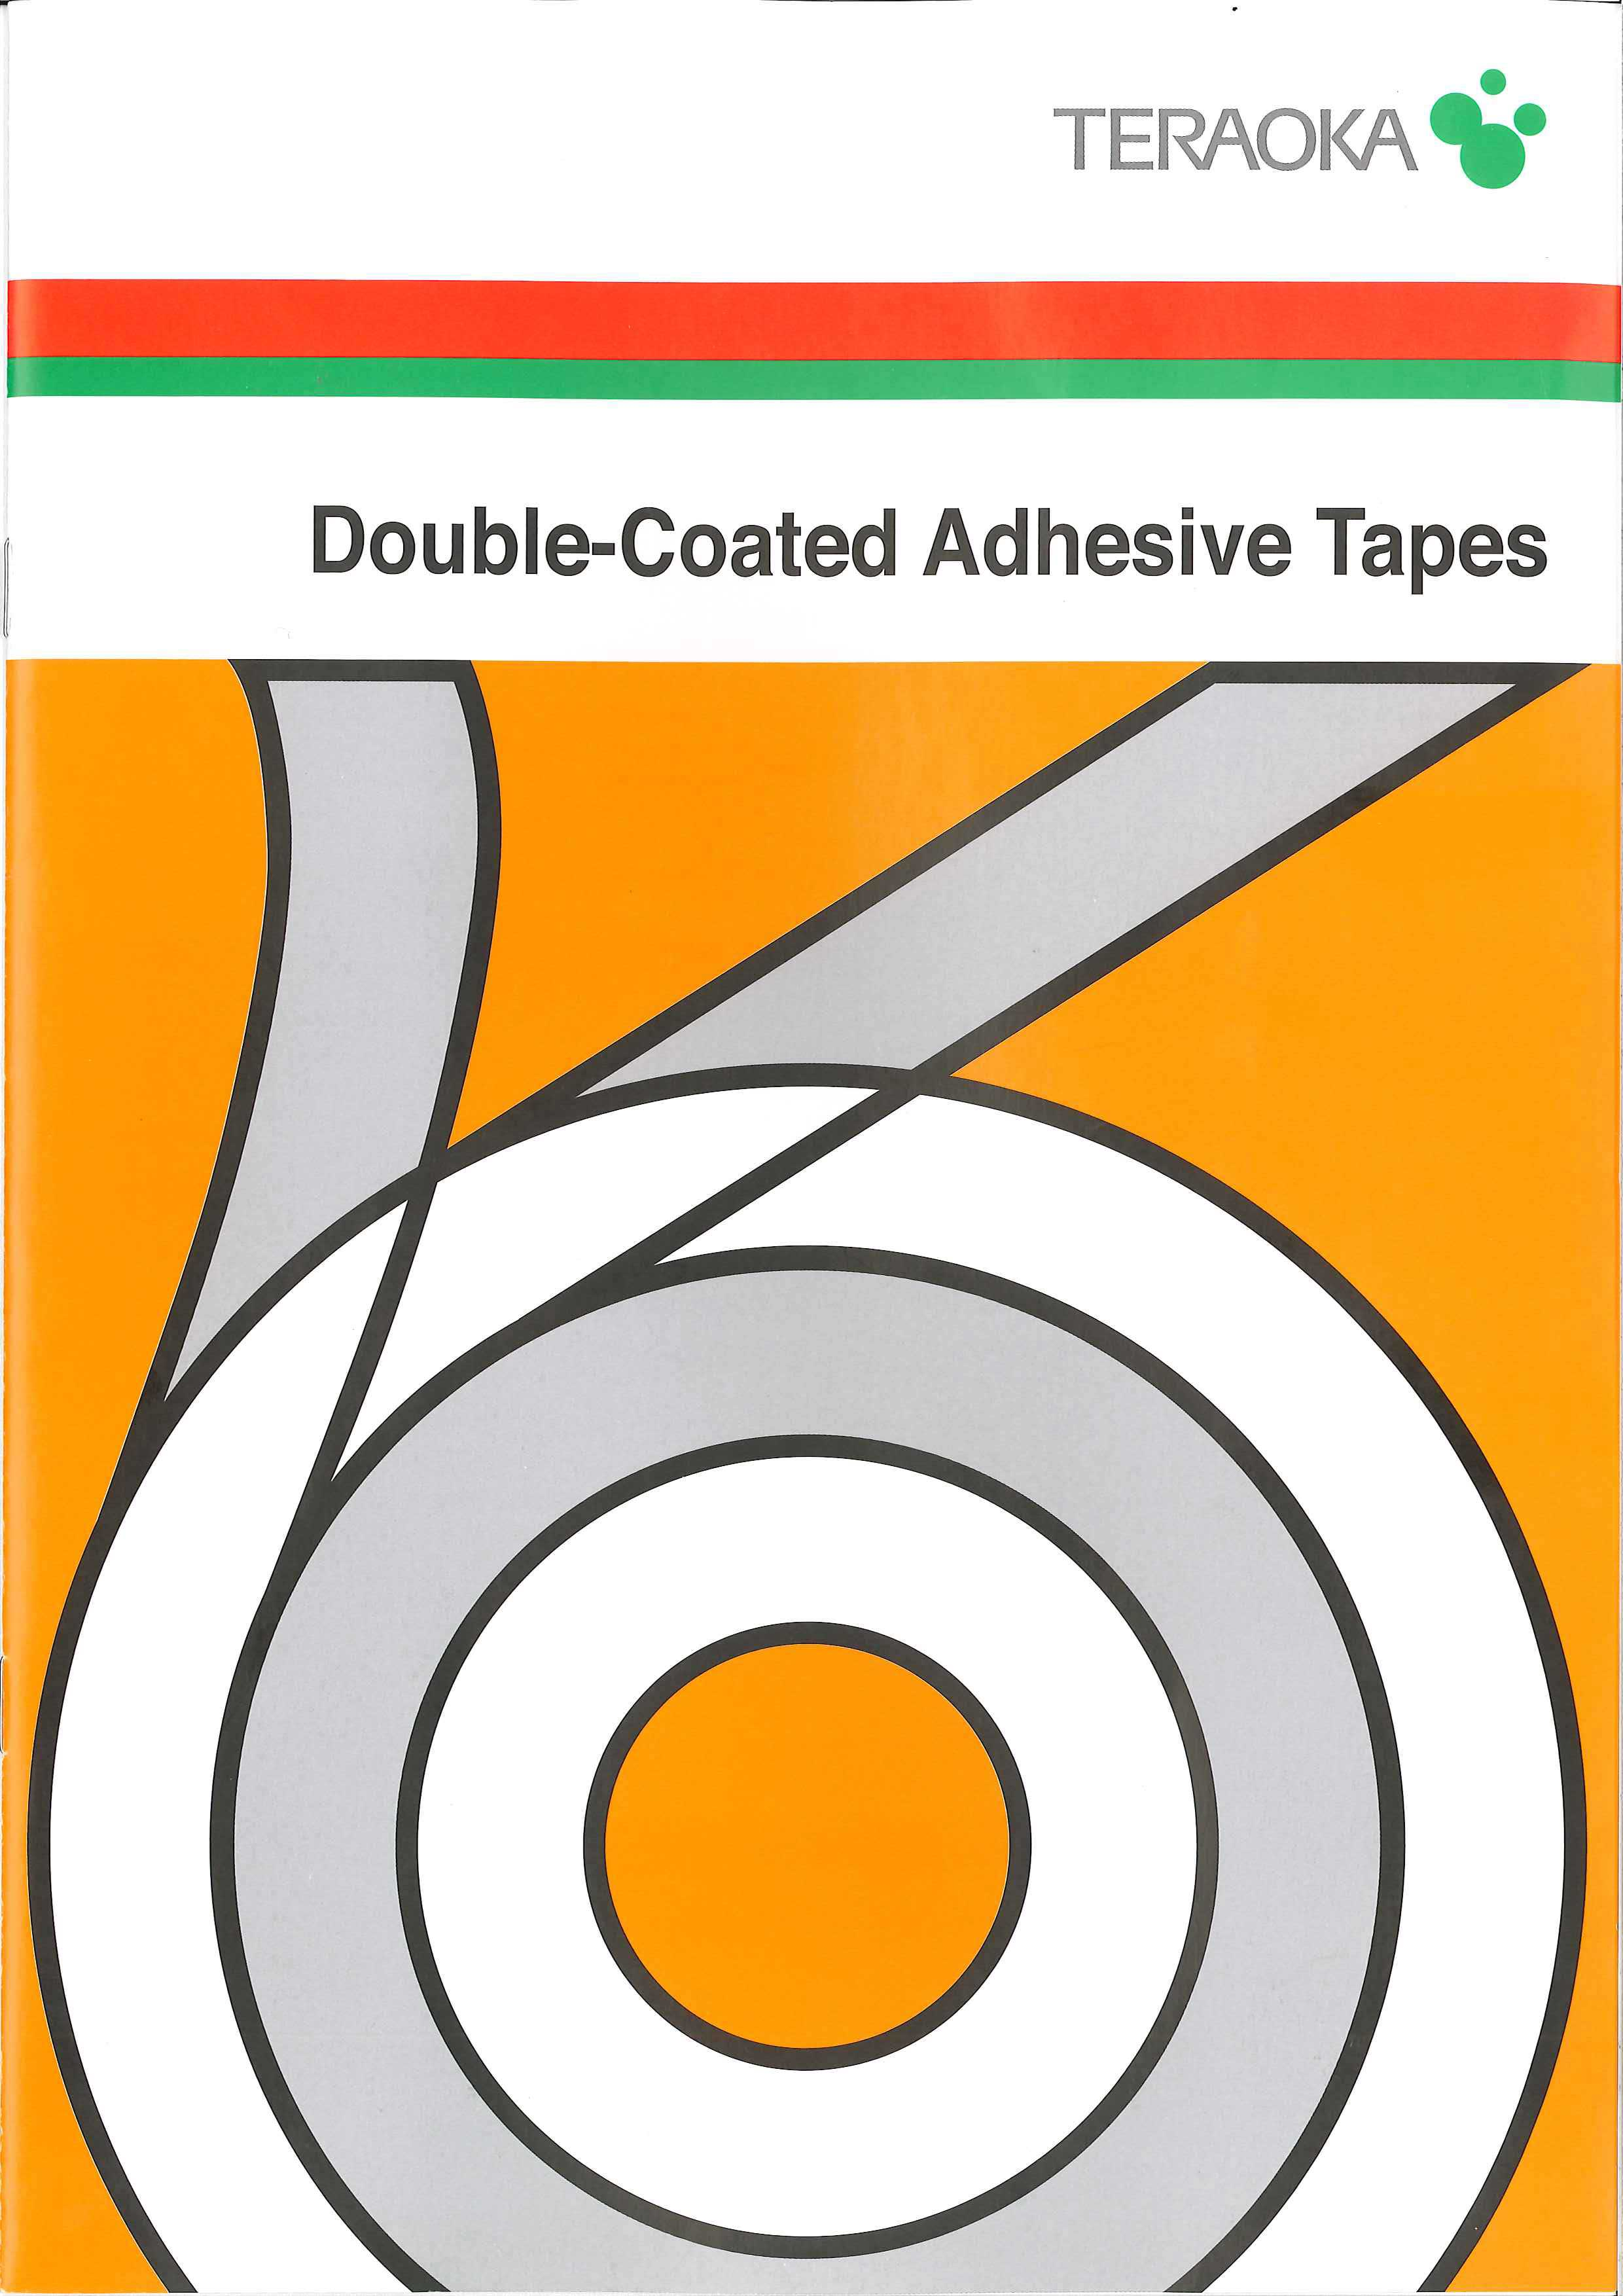 Double-Coated Adhesive Tapes